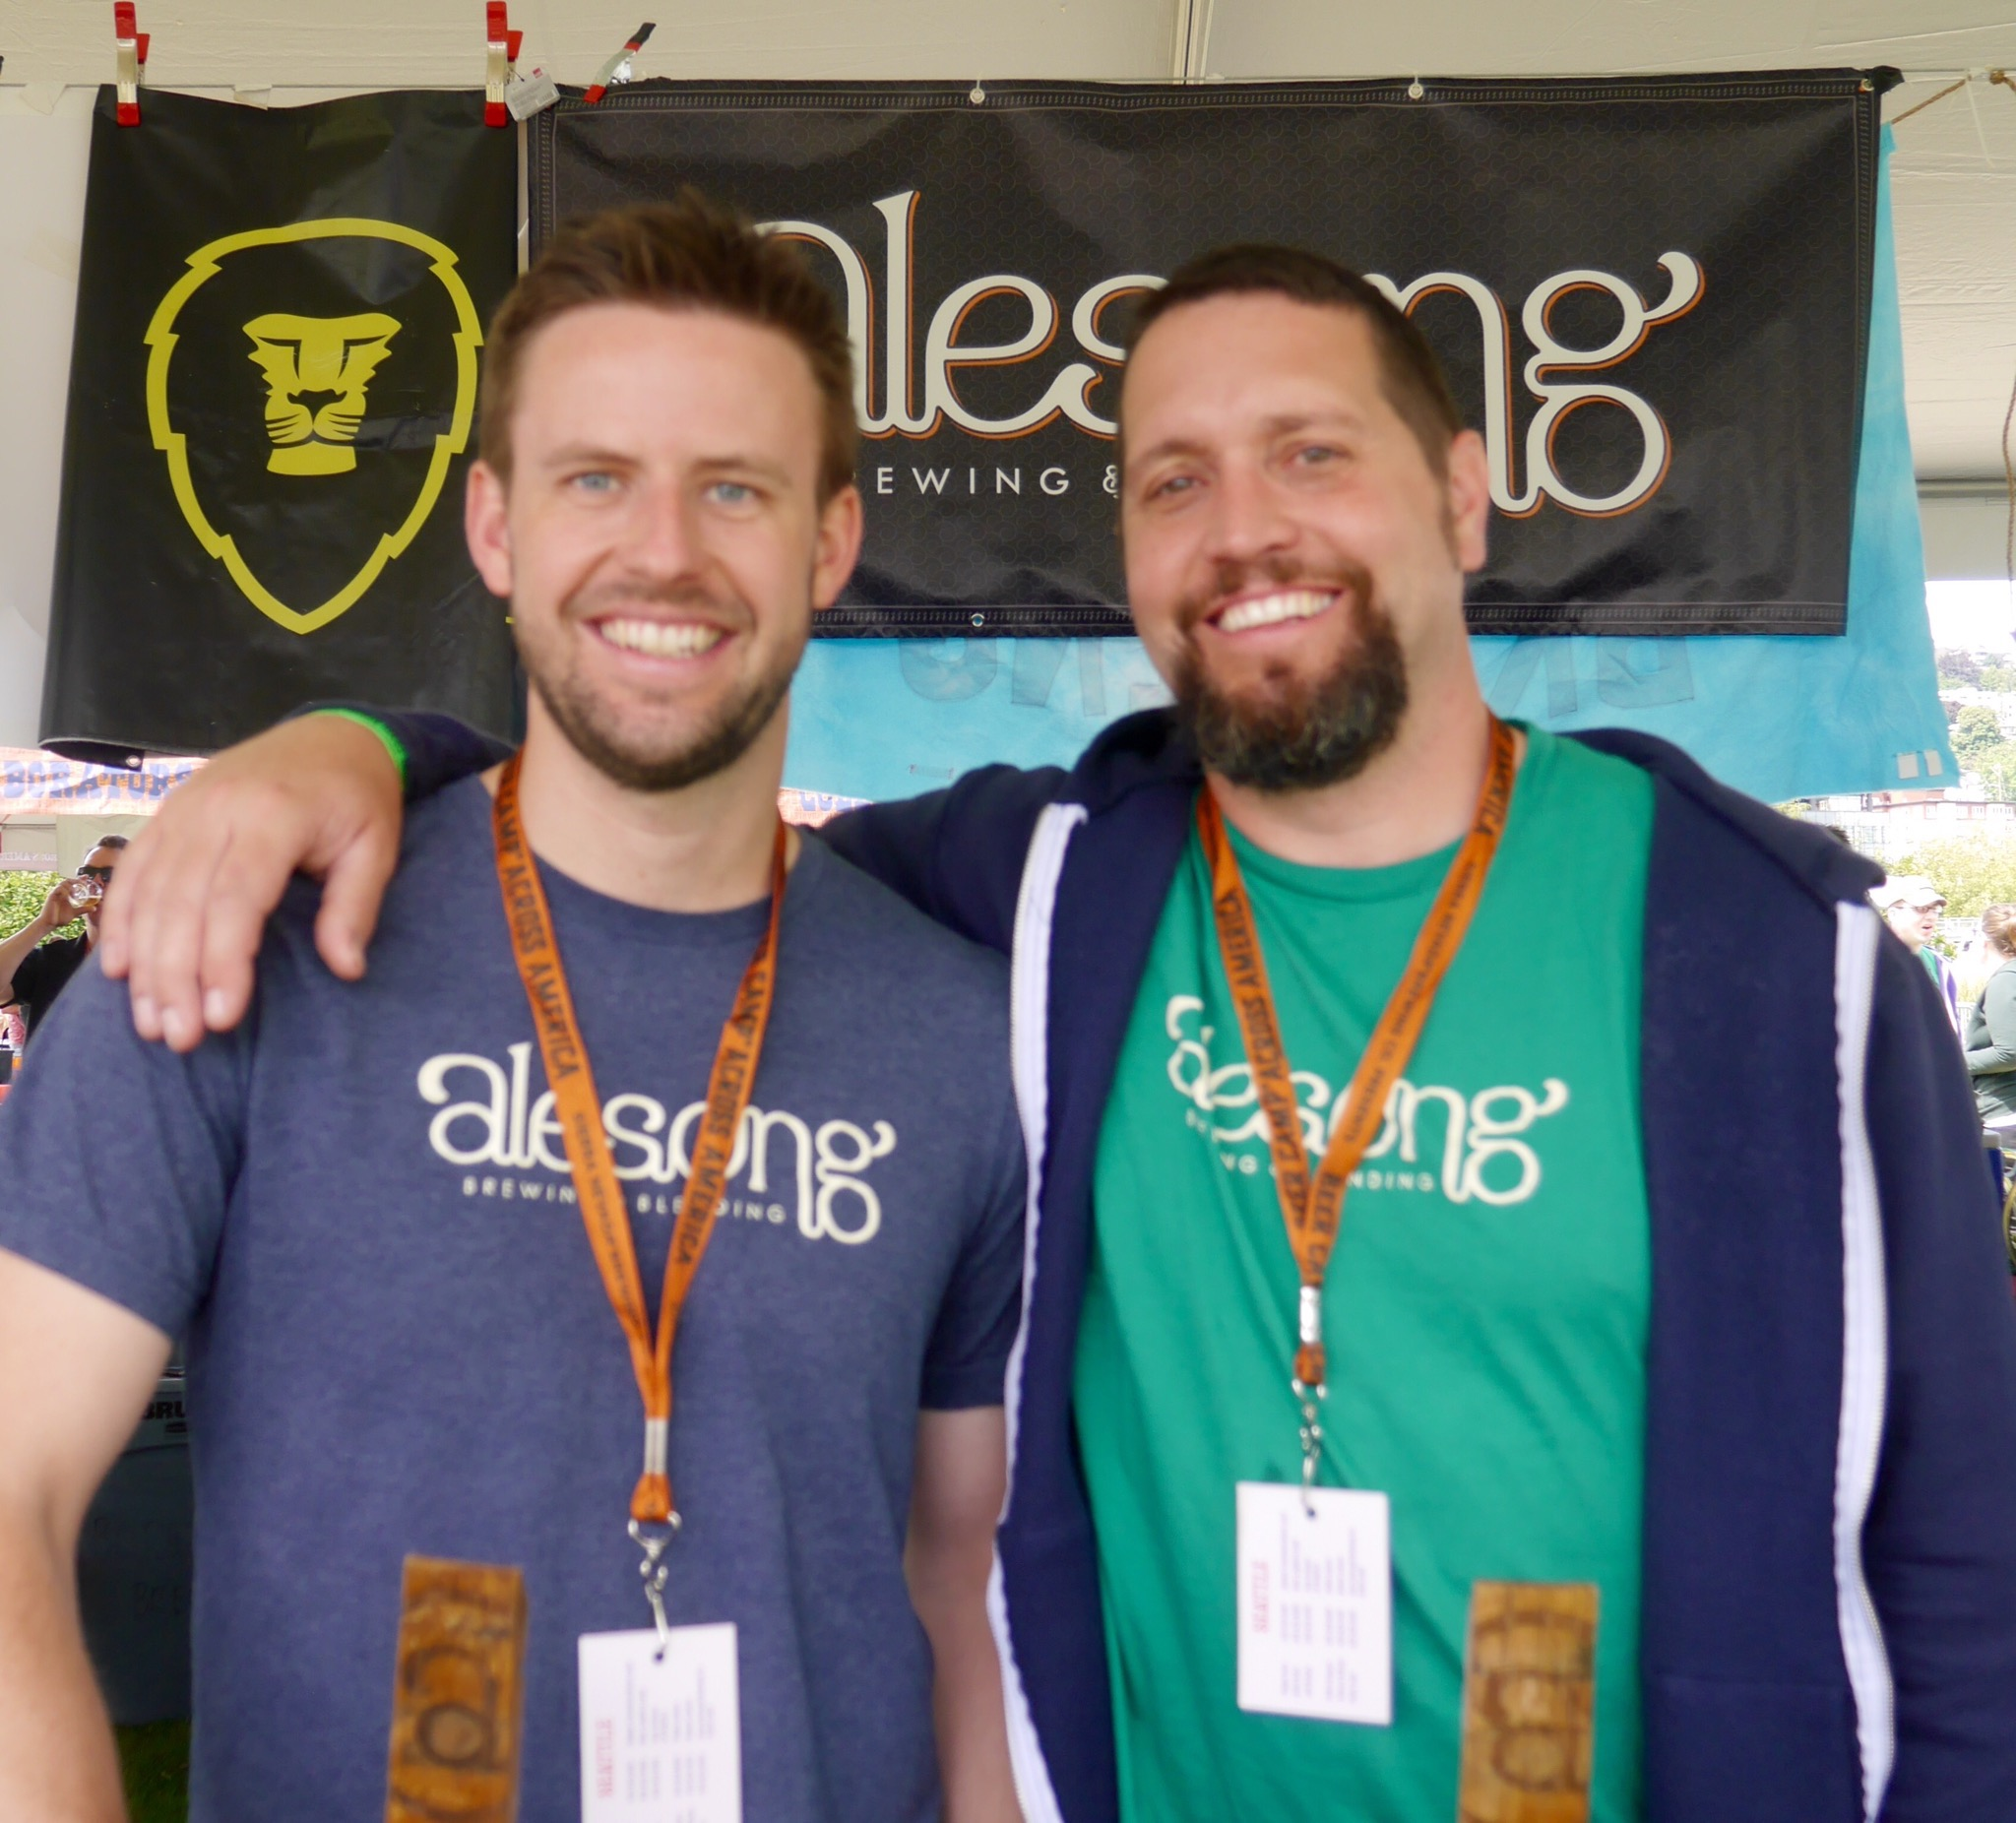 Doug Coombs and Matt Van Wyk of Alesong Brewing & Blending at Sierra Nevada Beer Camp Across America Festival in Seattle. (photo by Cat Stelzer)